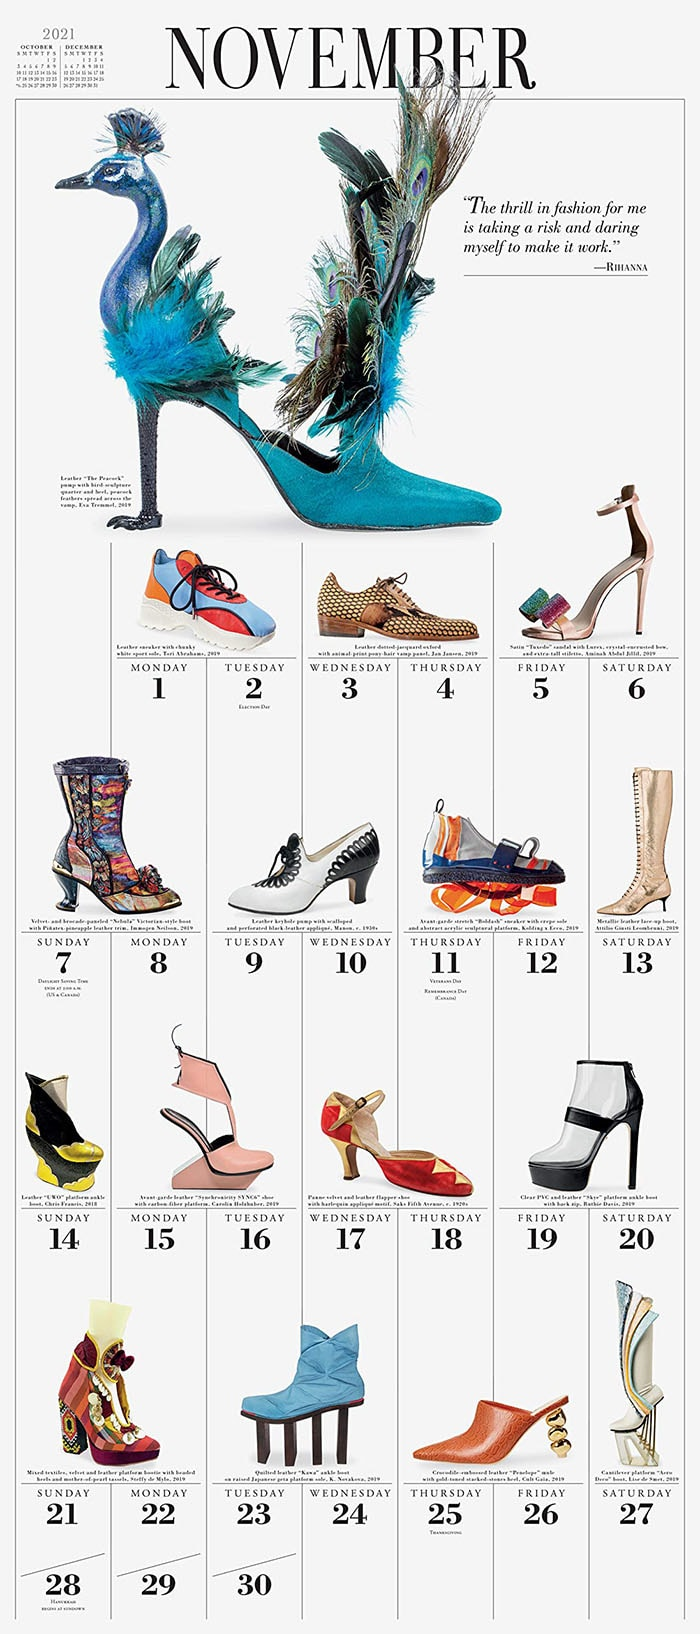 The calendar inspirational quotes from fashion designers and celebrity fashion icons